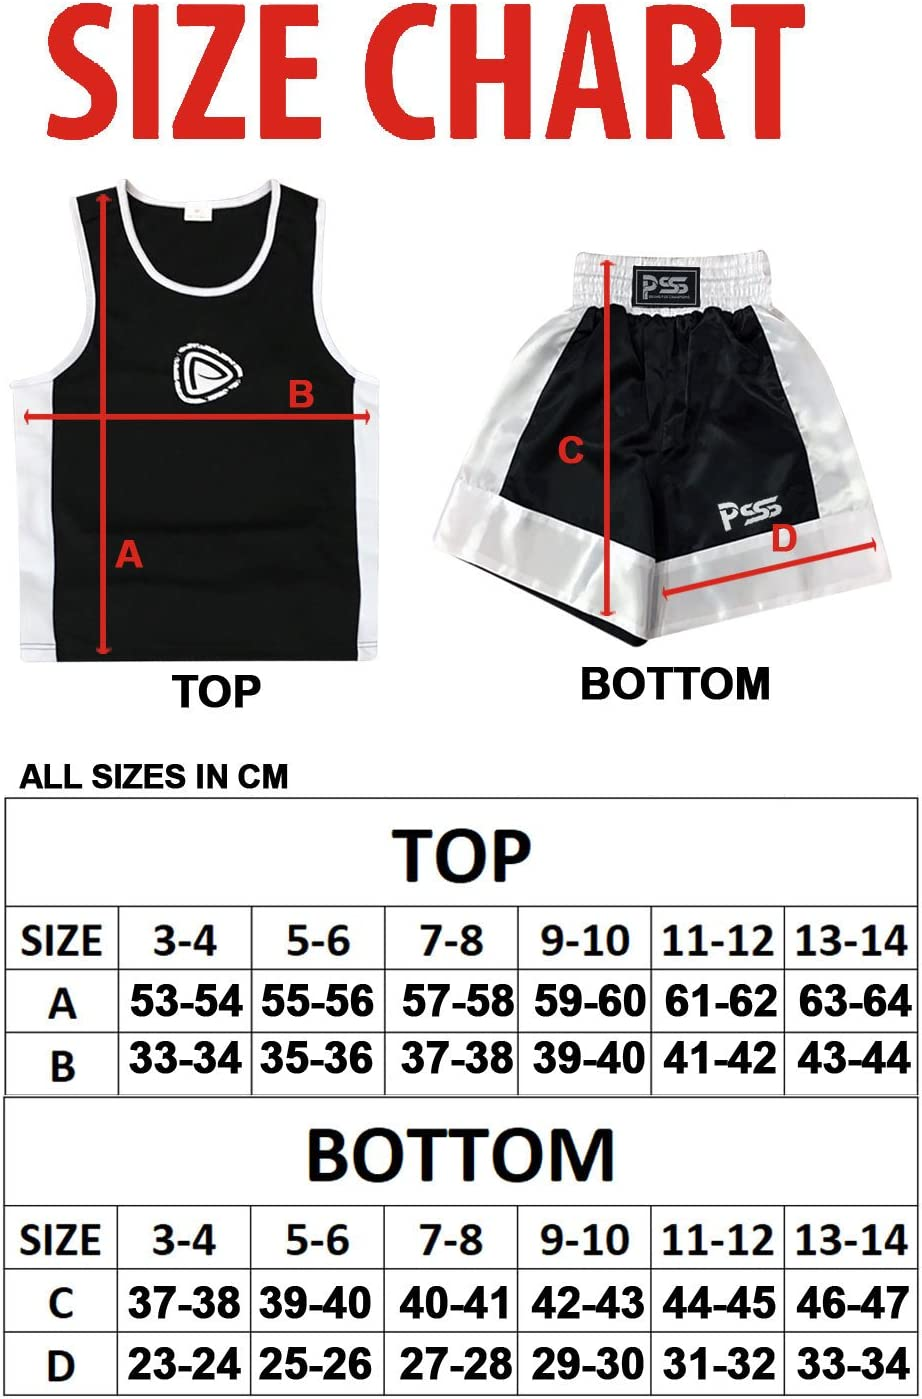 From Ages 3-14 PSS Ultimate Kids Boxing Student Uniform Two Comfortable Pieces Set And 6oz boxing gloves Colour: Black and white Top and Short Breathable Fabric